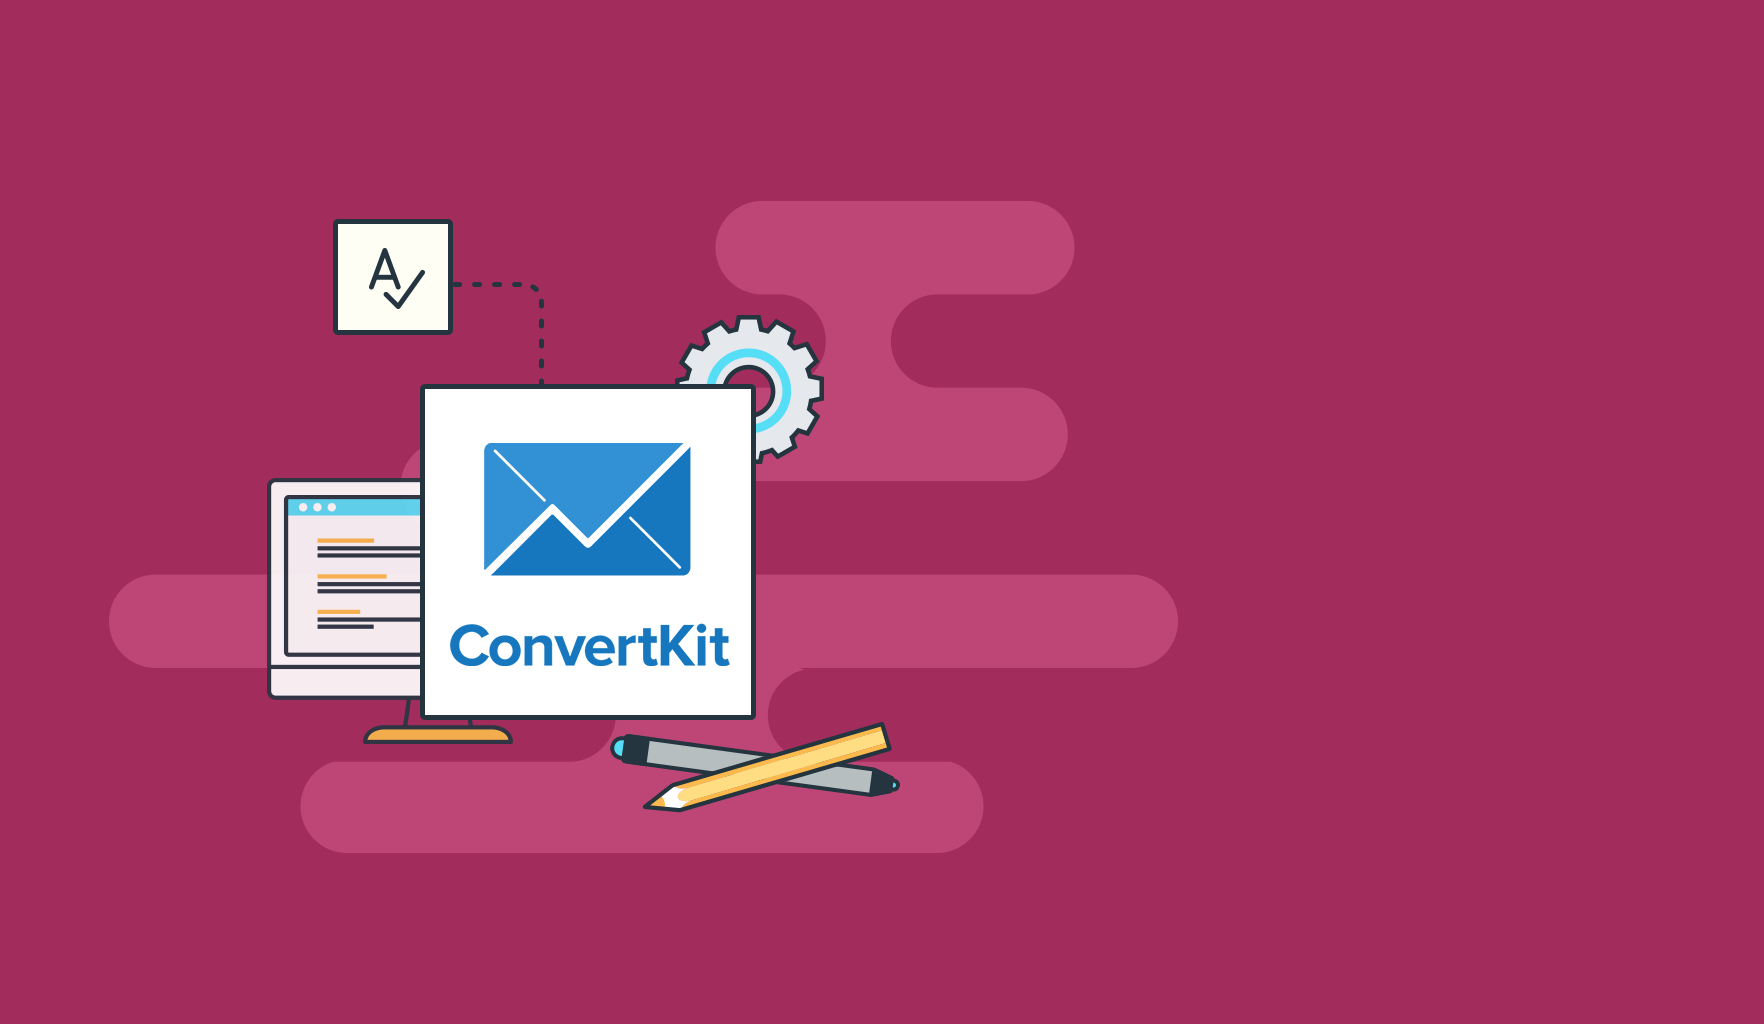 Not Getting Export Email From Convertkit